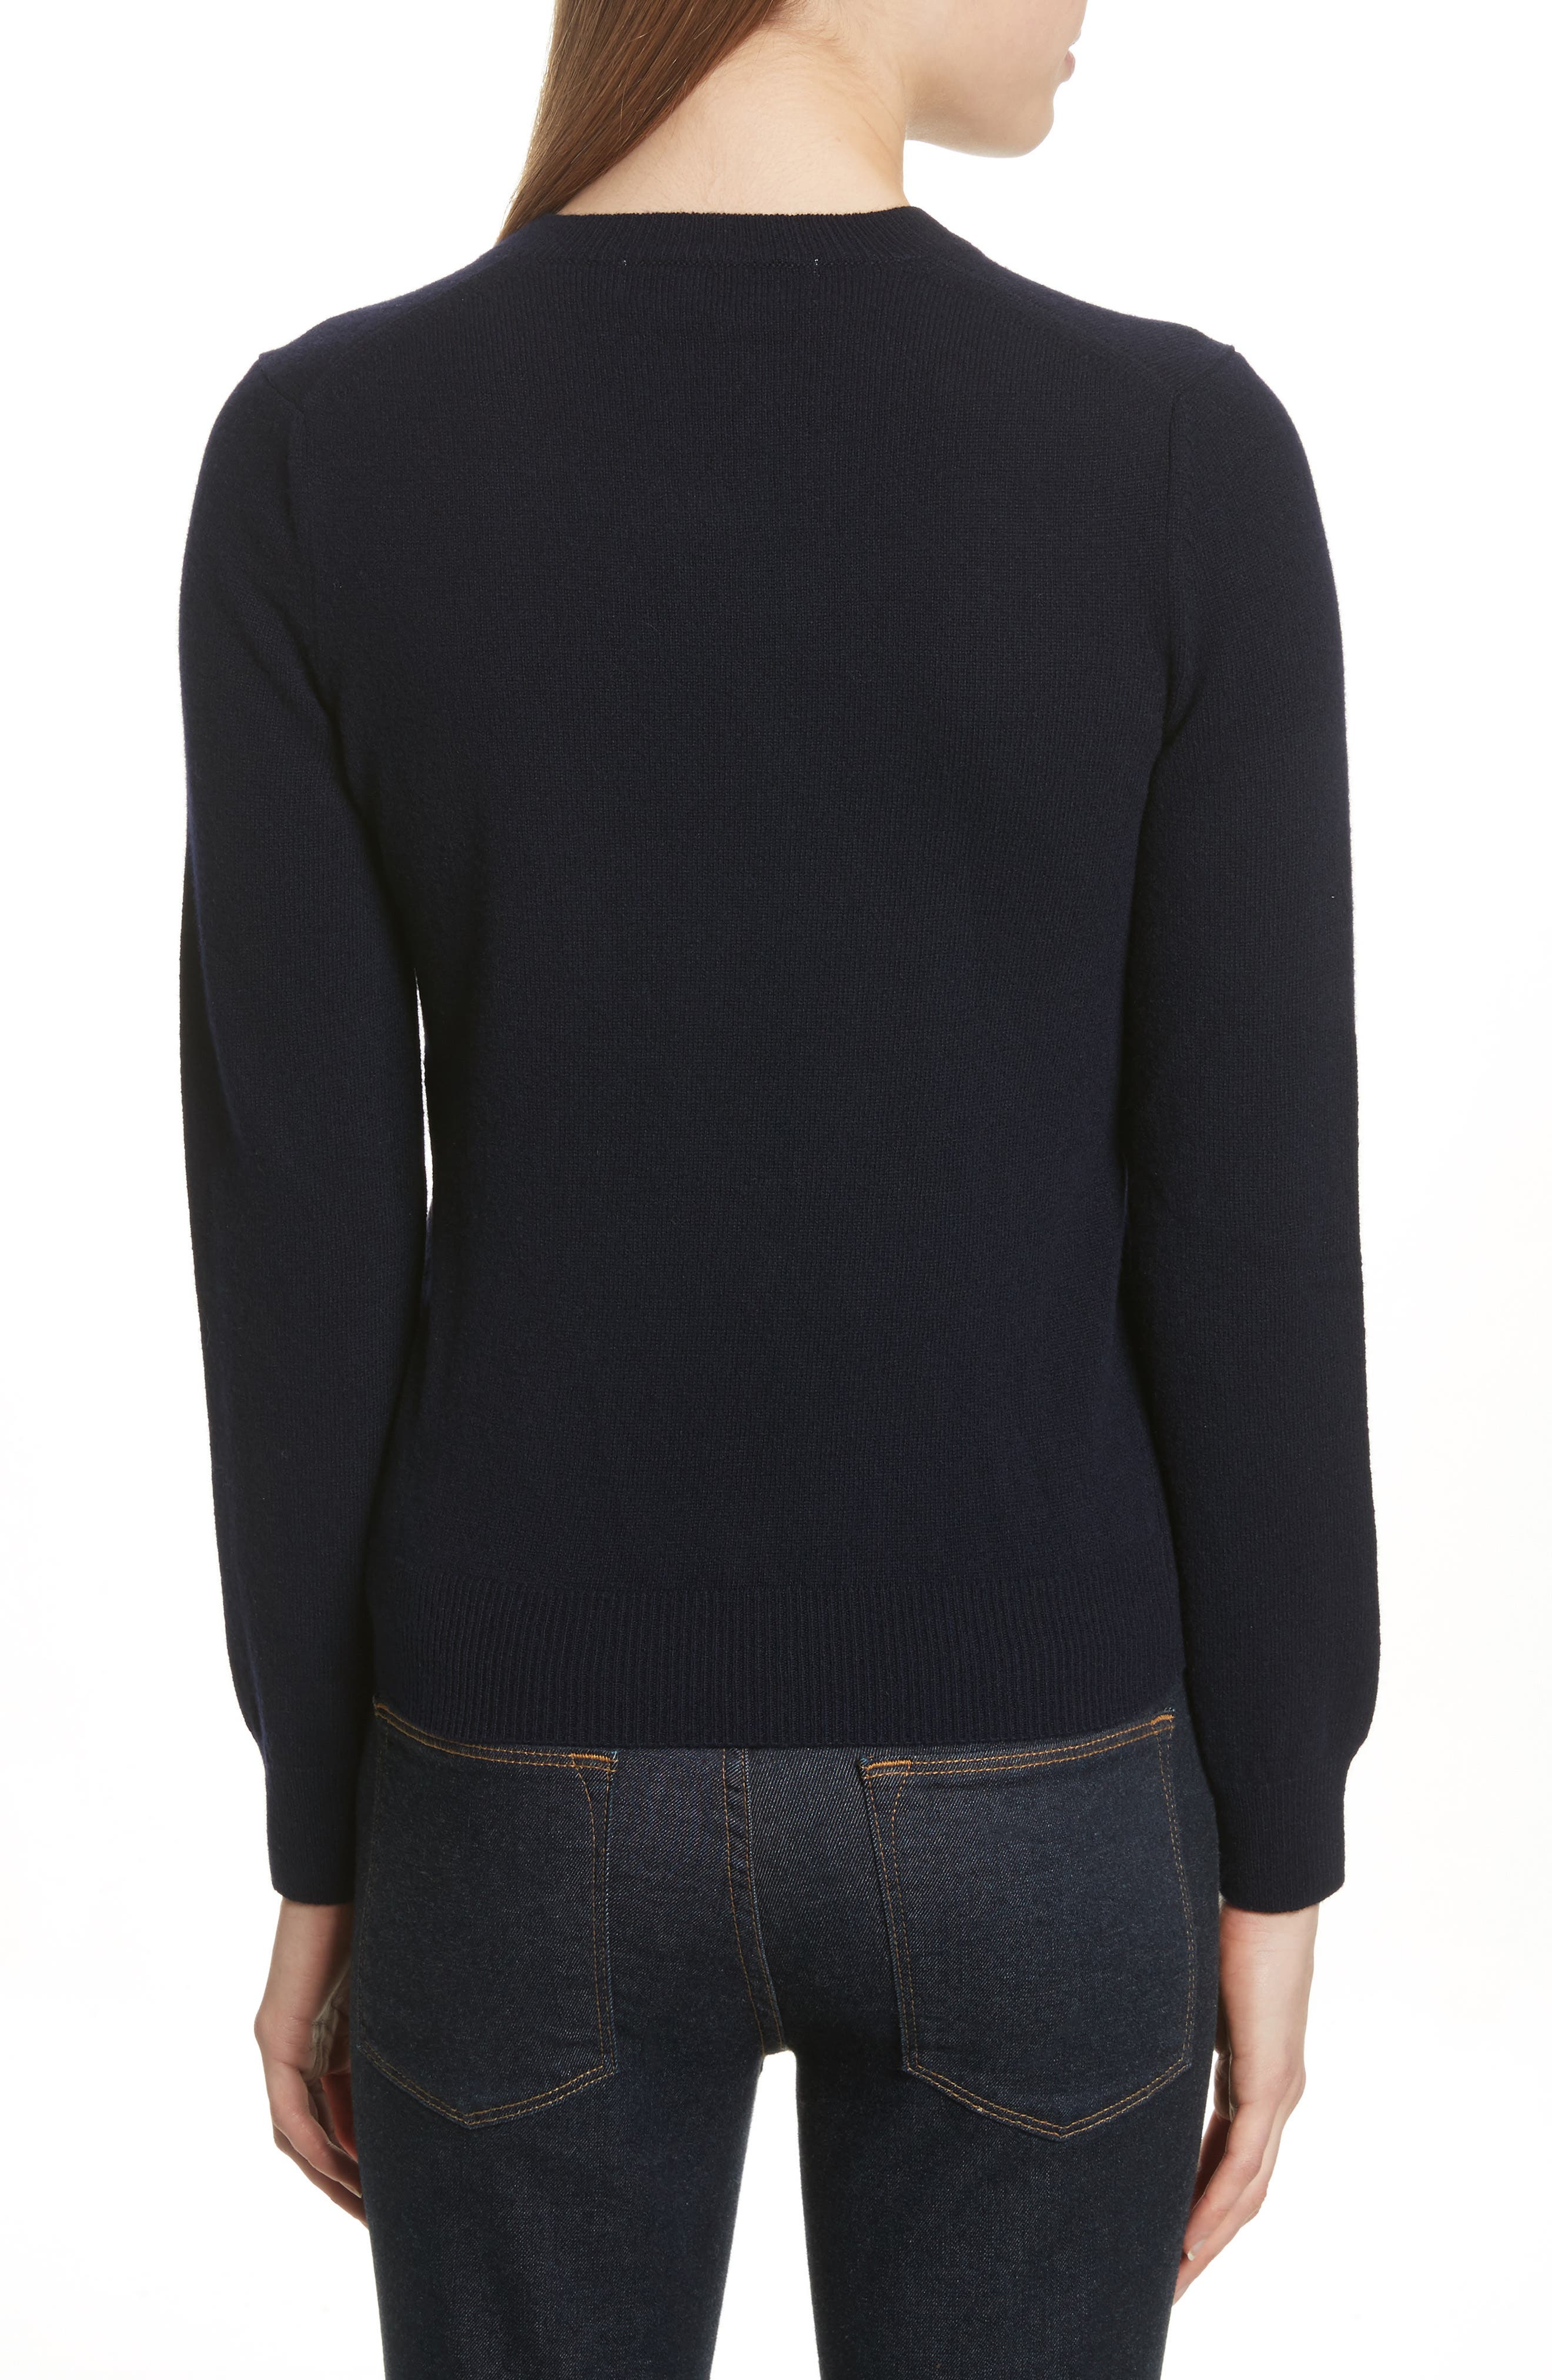 Comme des Garçons PLAY Wool Sweater,                             Alternate thumbnail 2, color,                             NAVY